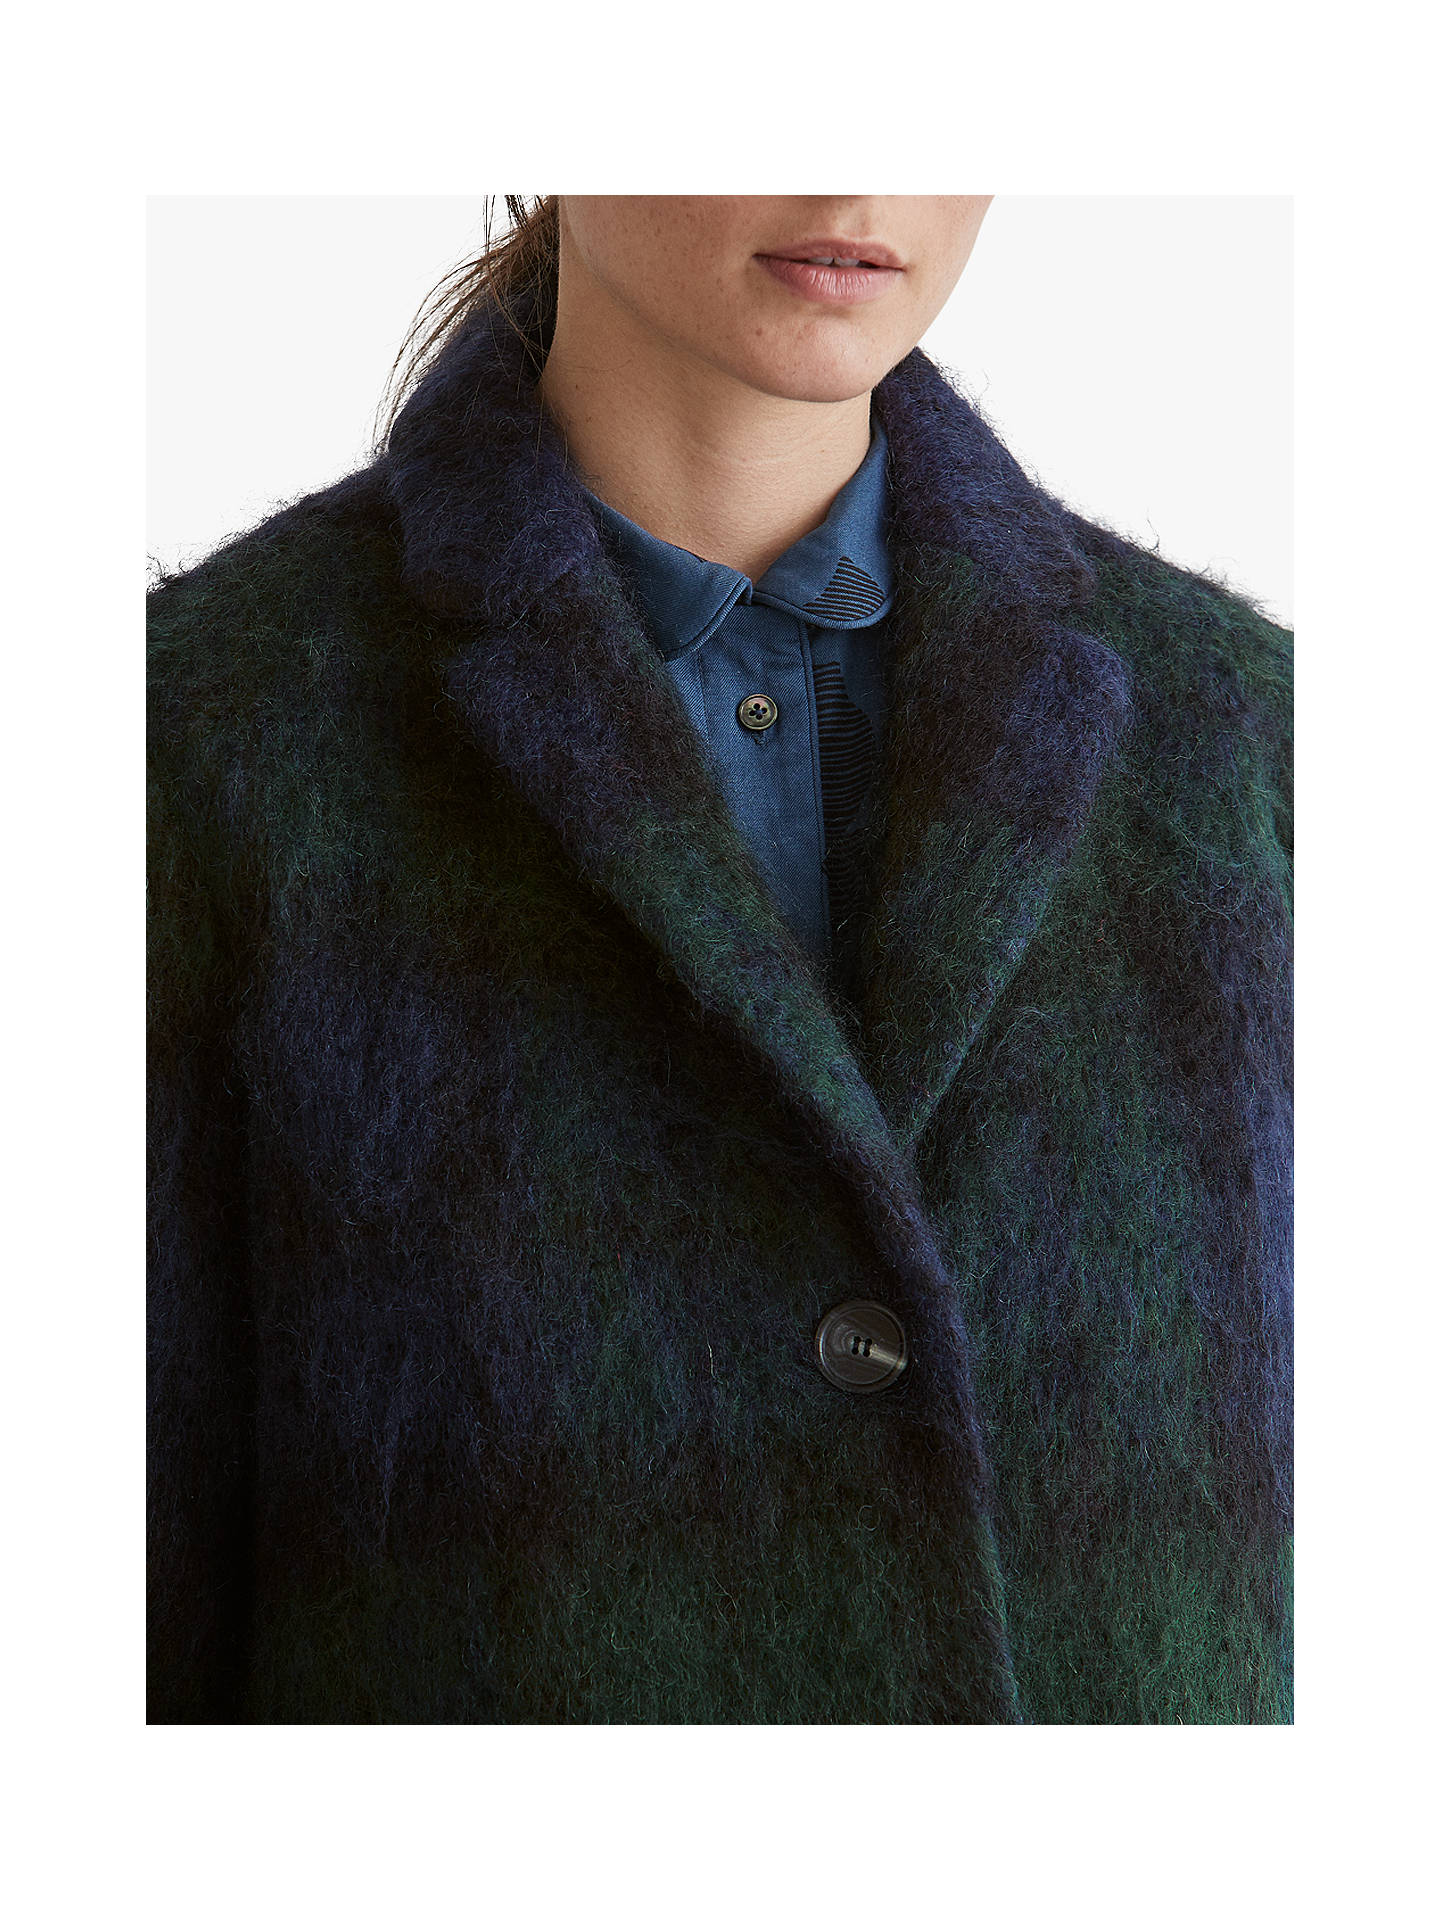 BuyToast Blackwatch Check Coat, Multi, 8 Online at johnlewis.com